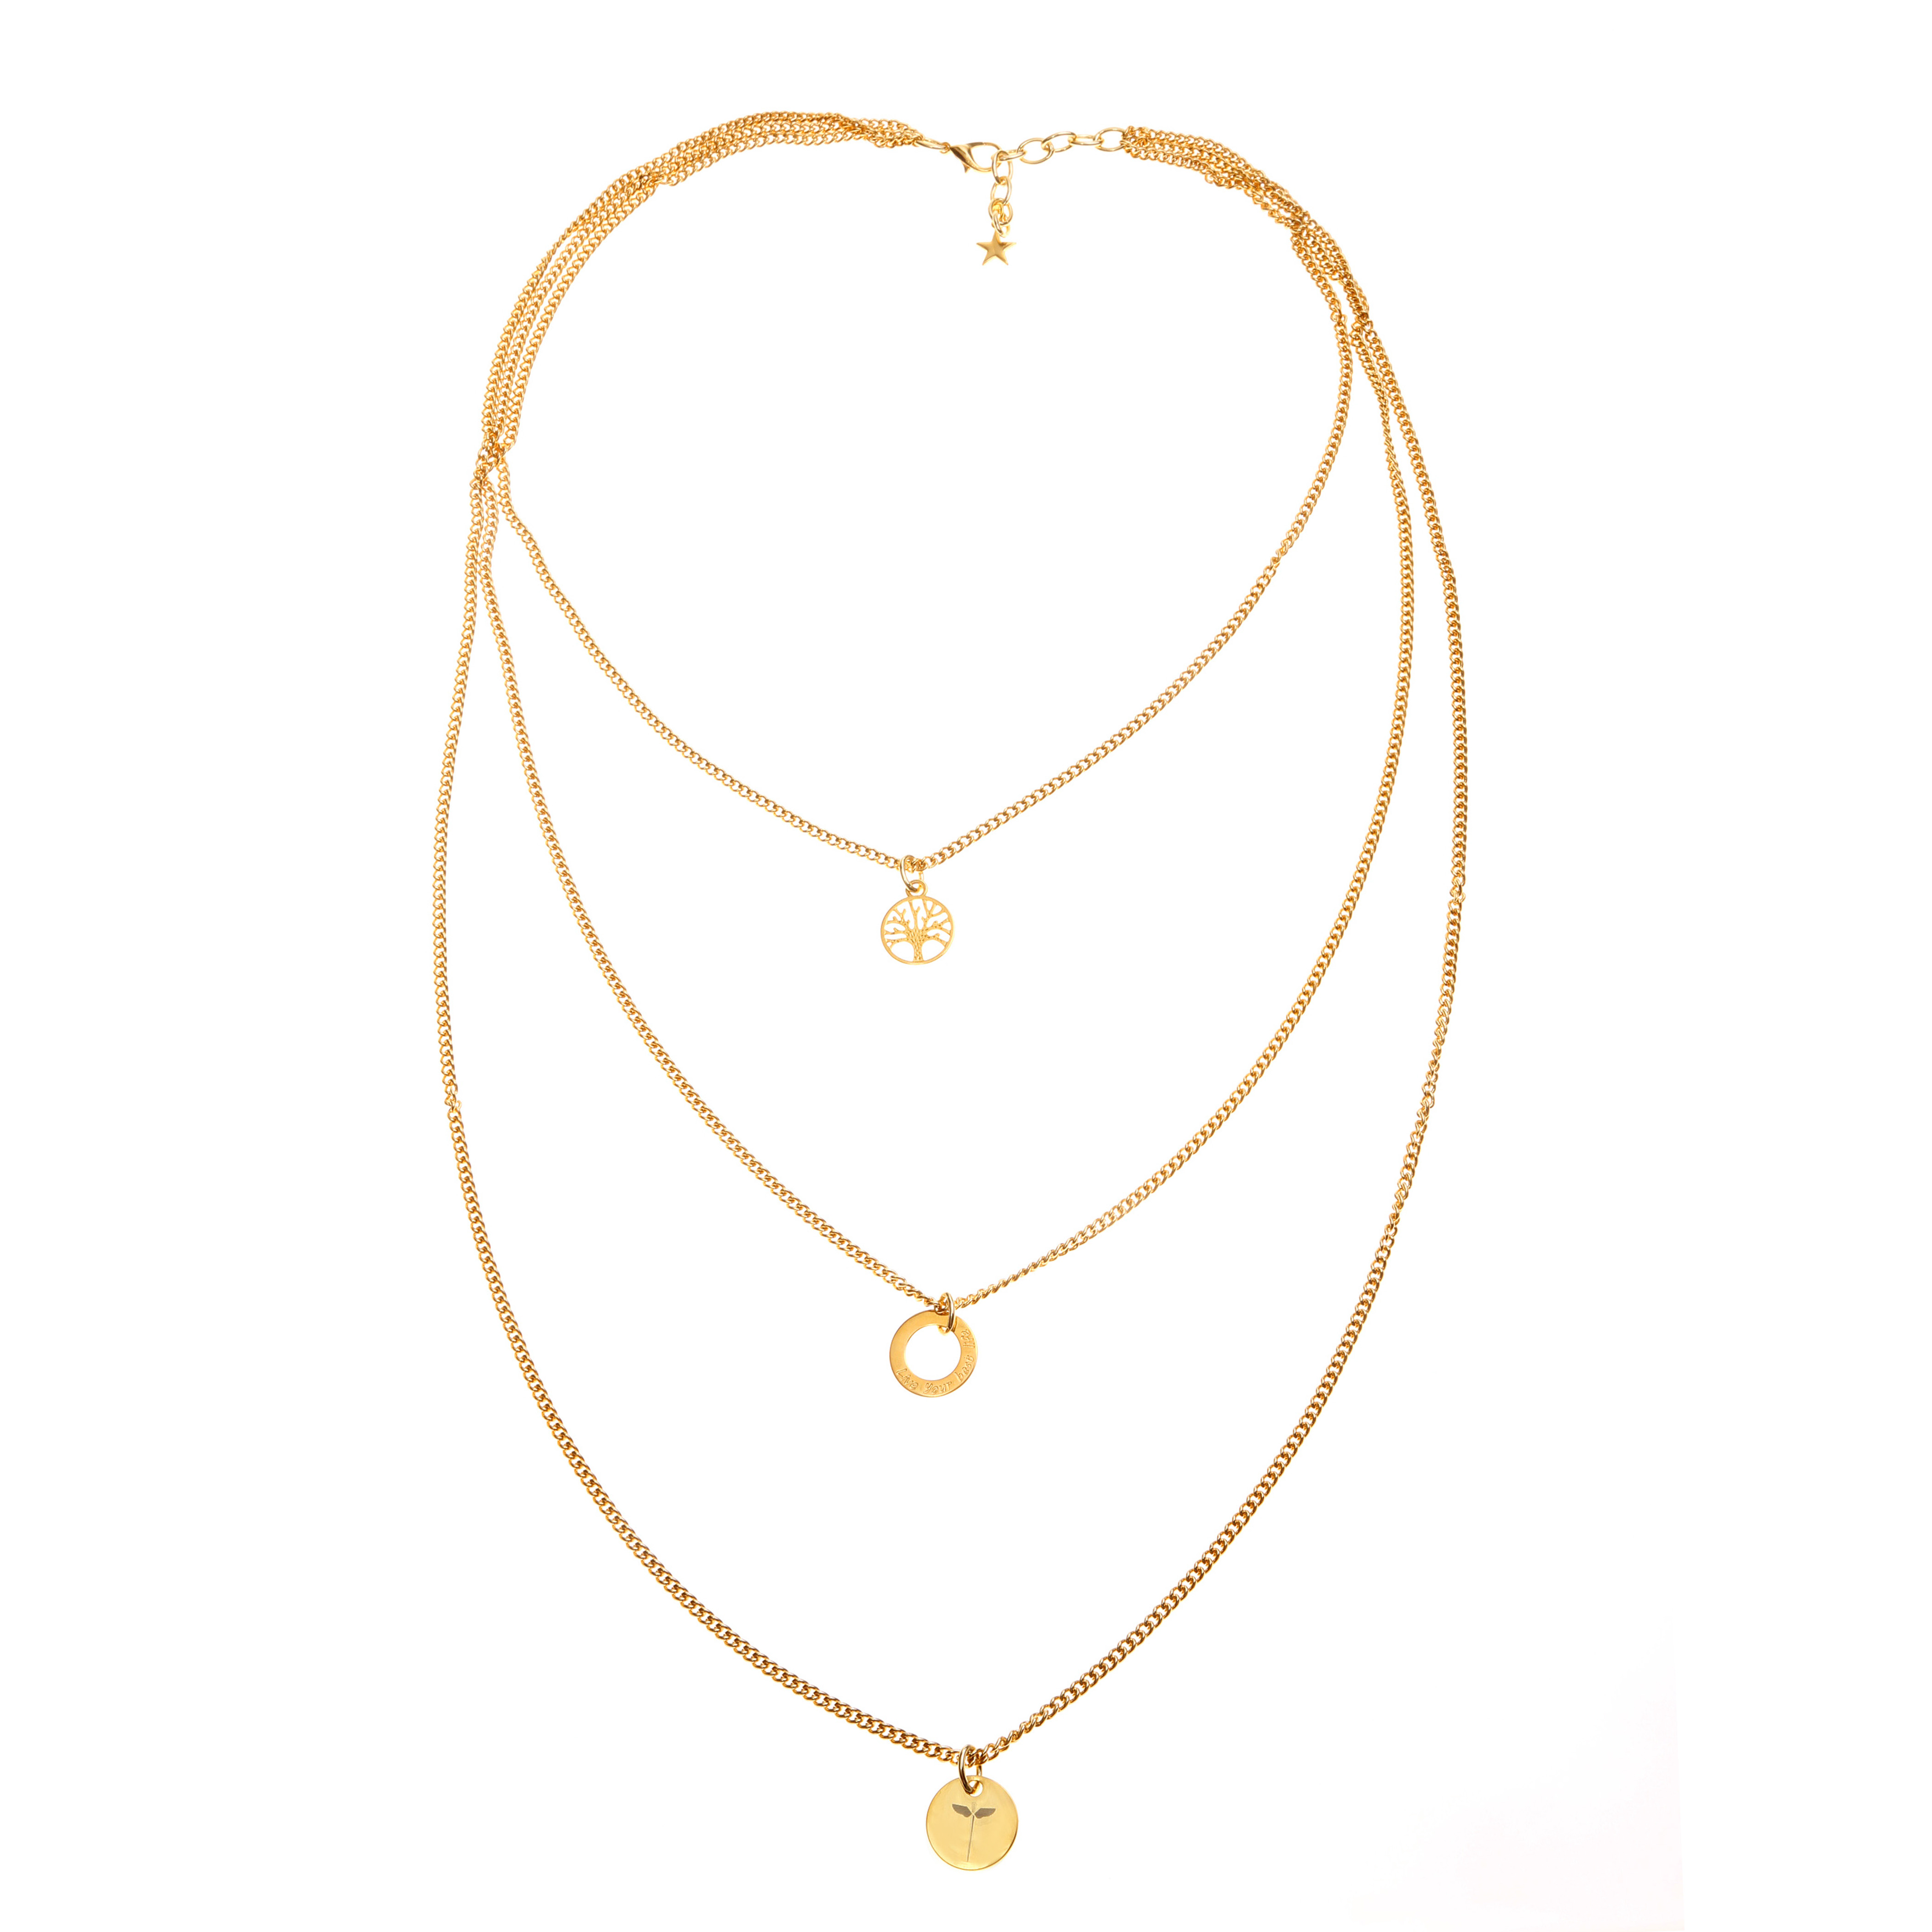 LIVE YOUR BEST LIFE NECKLACE - Freya Lupo Jewelry